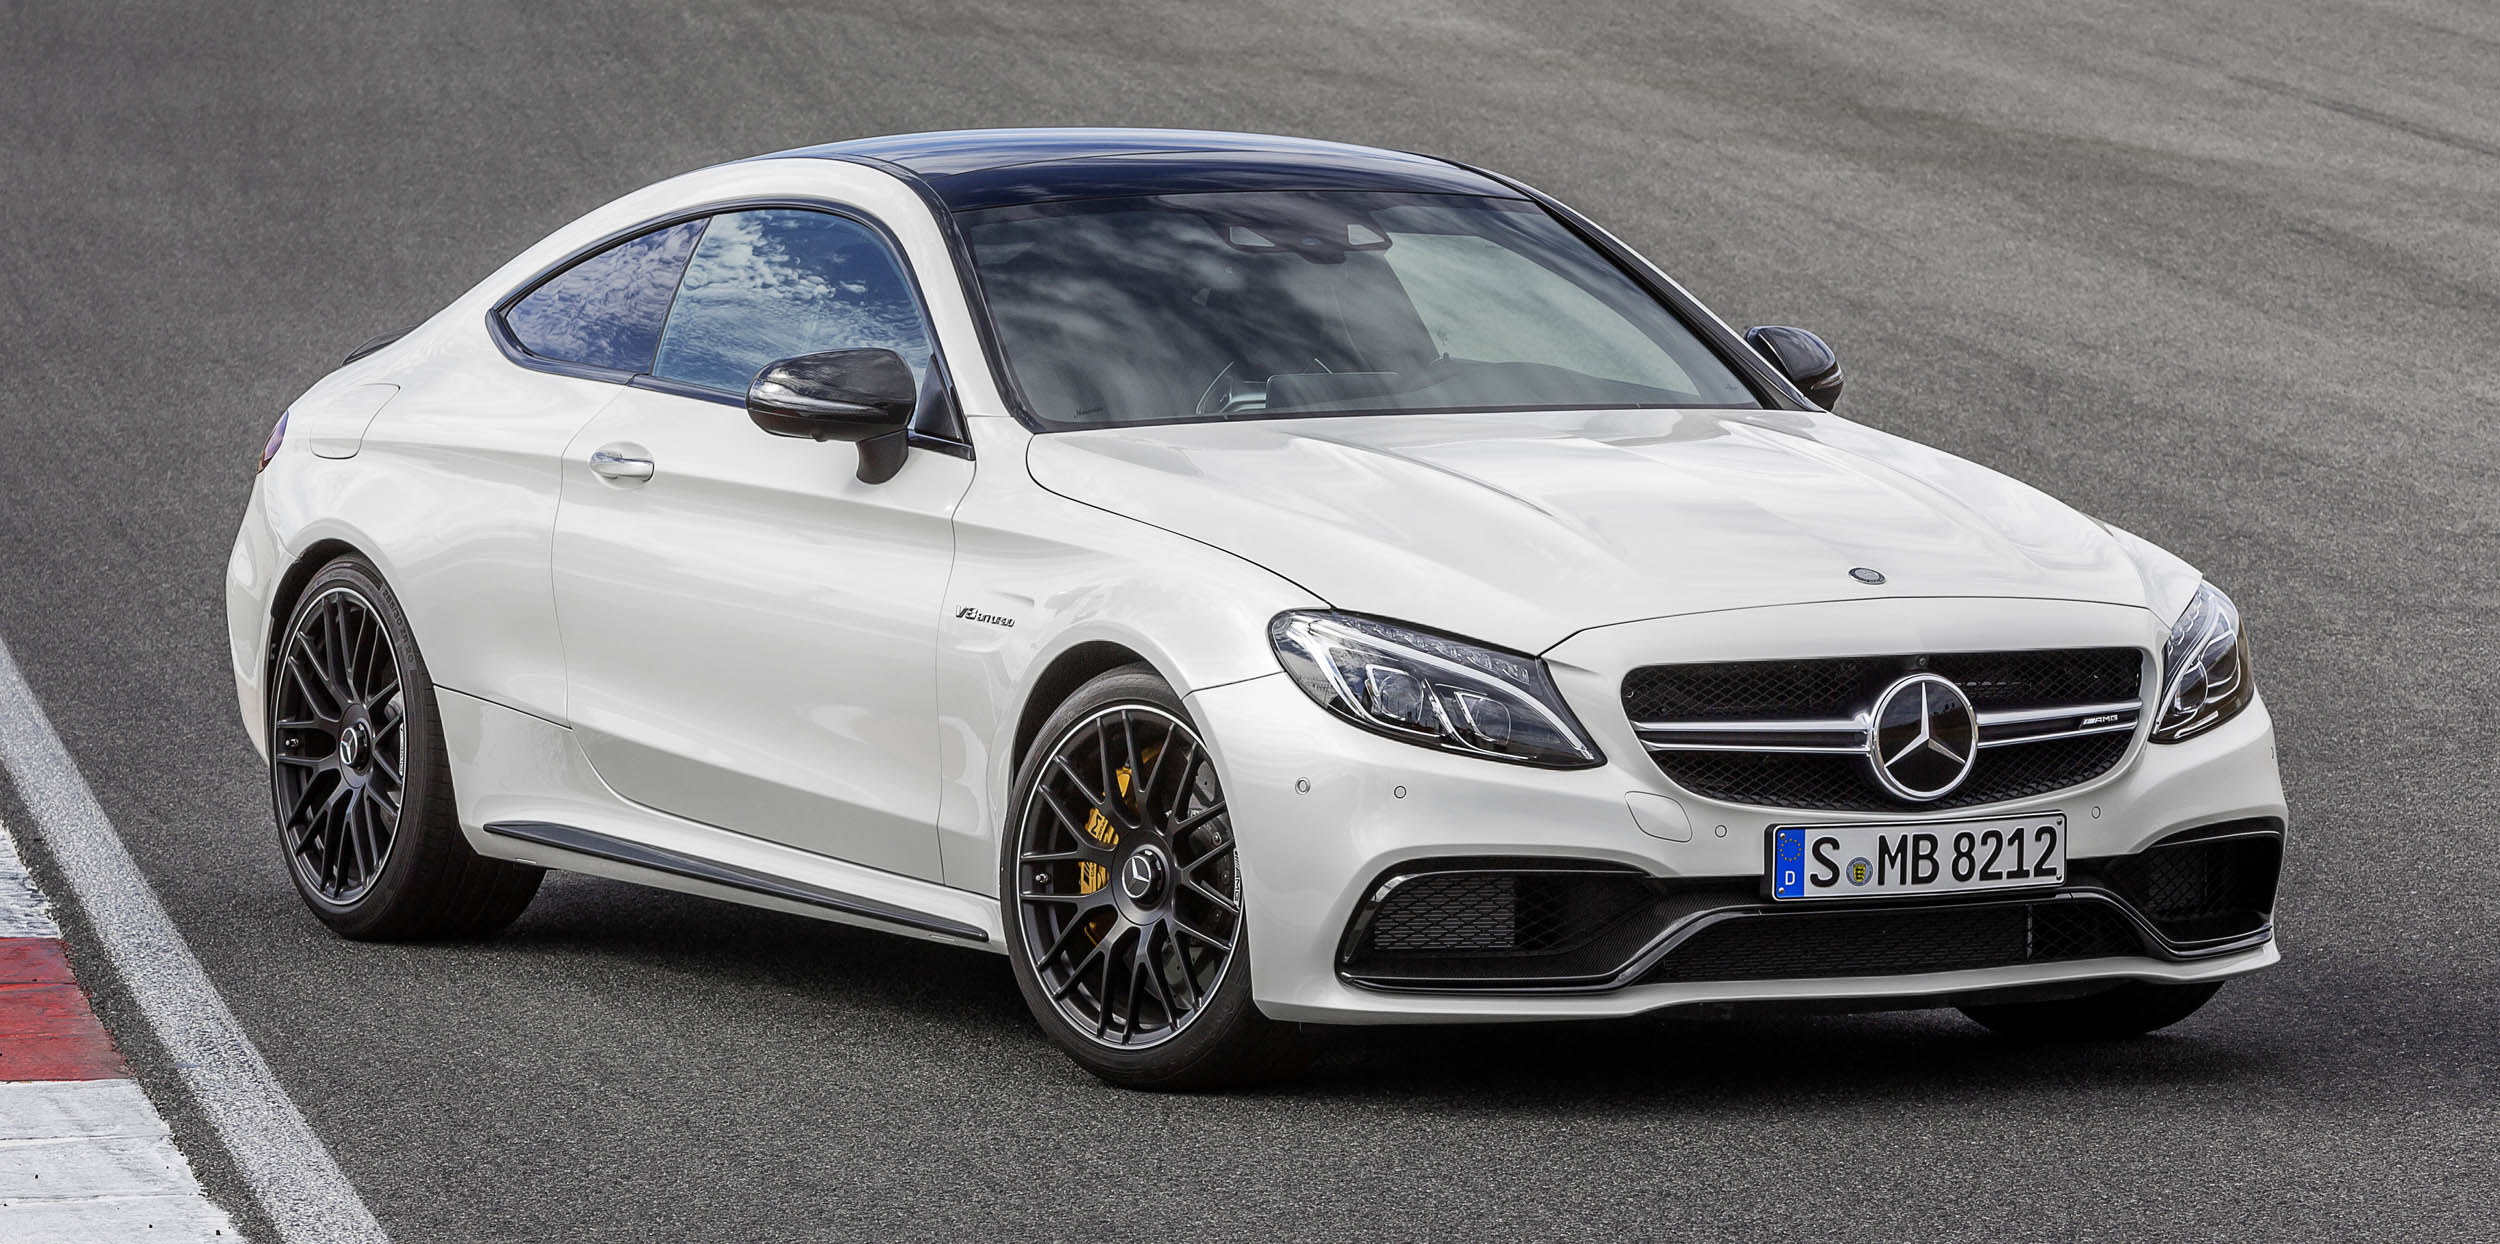 C63 Amg Coupe 2018 >> Mercedes-AMG C 63 Coupe debuts with up to 510 hp Image 369085